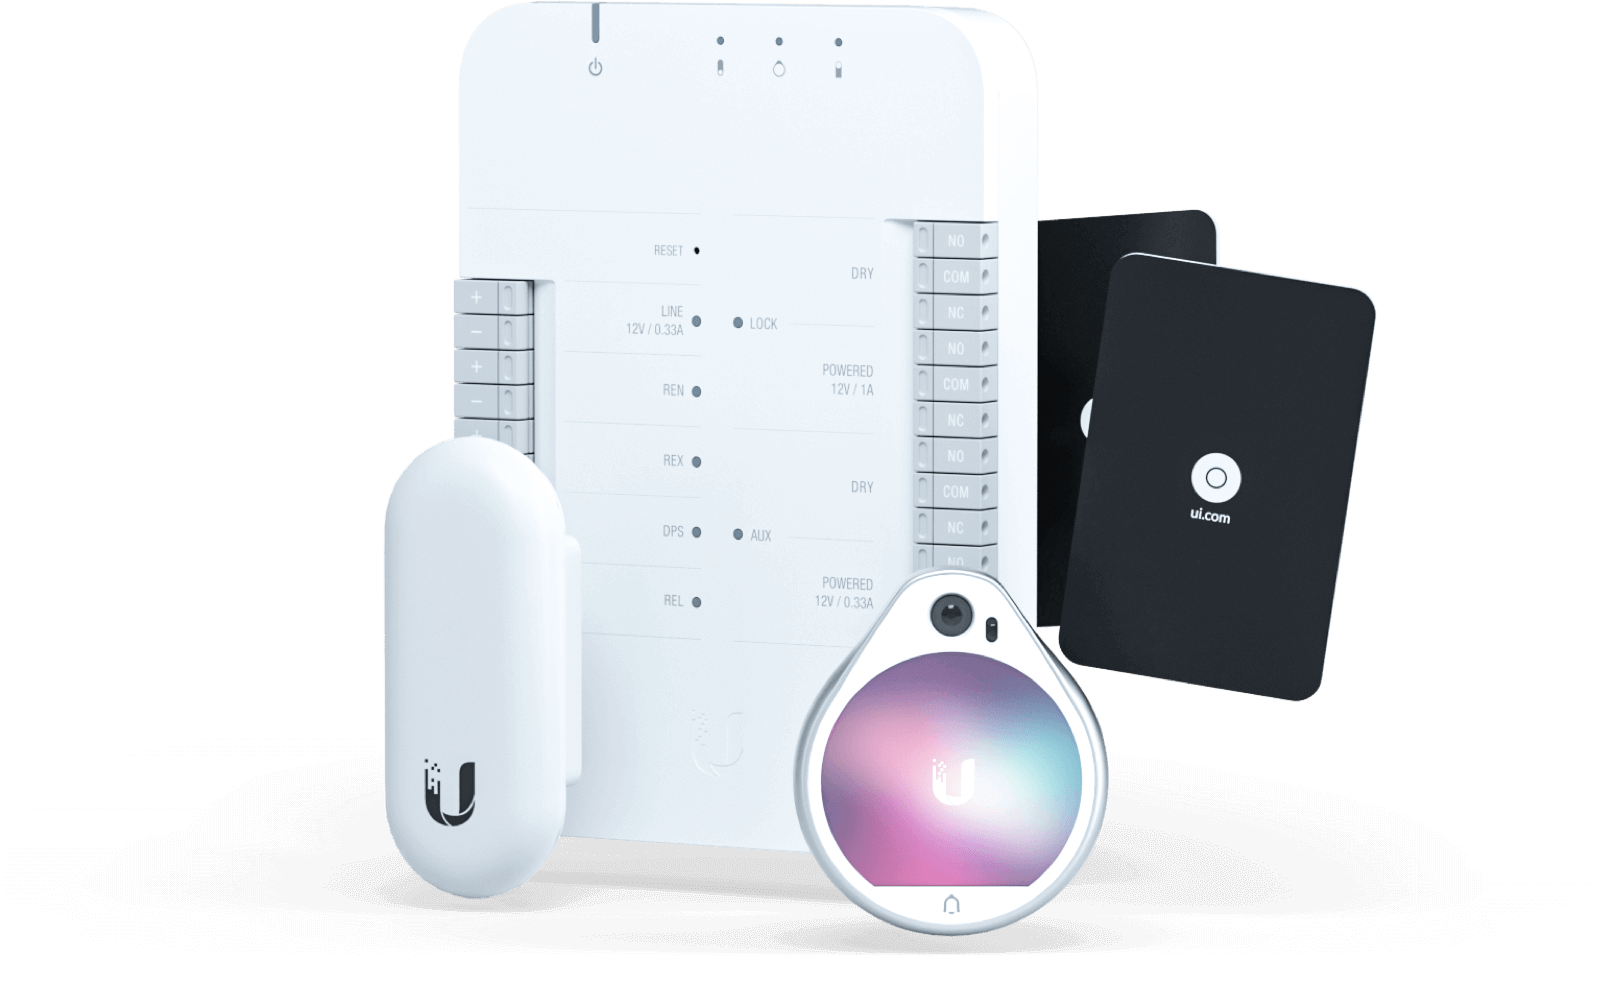 unifi-access-point.png